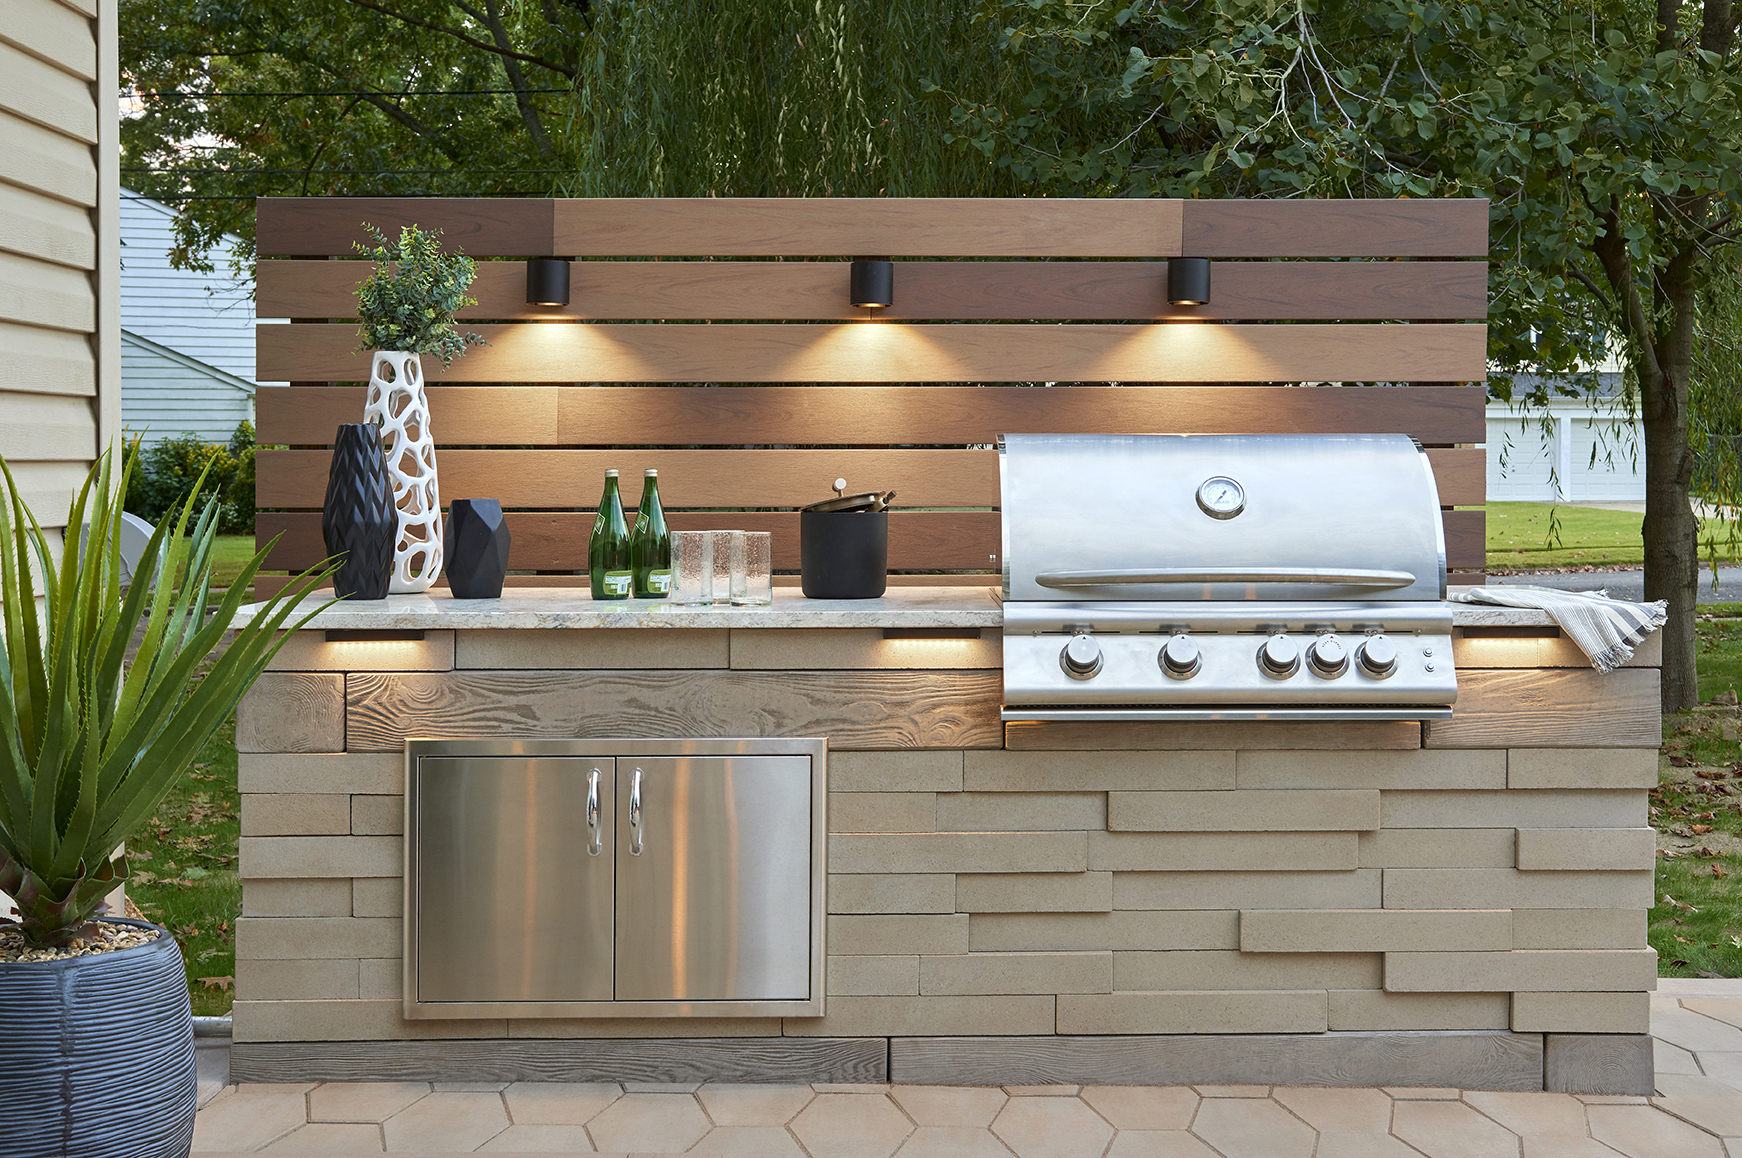 10 outdoor kitchen countertop ideas and